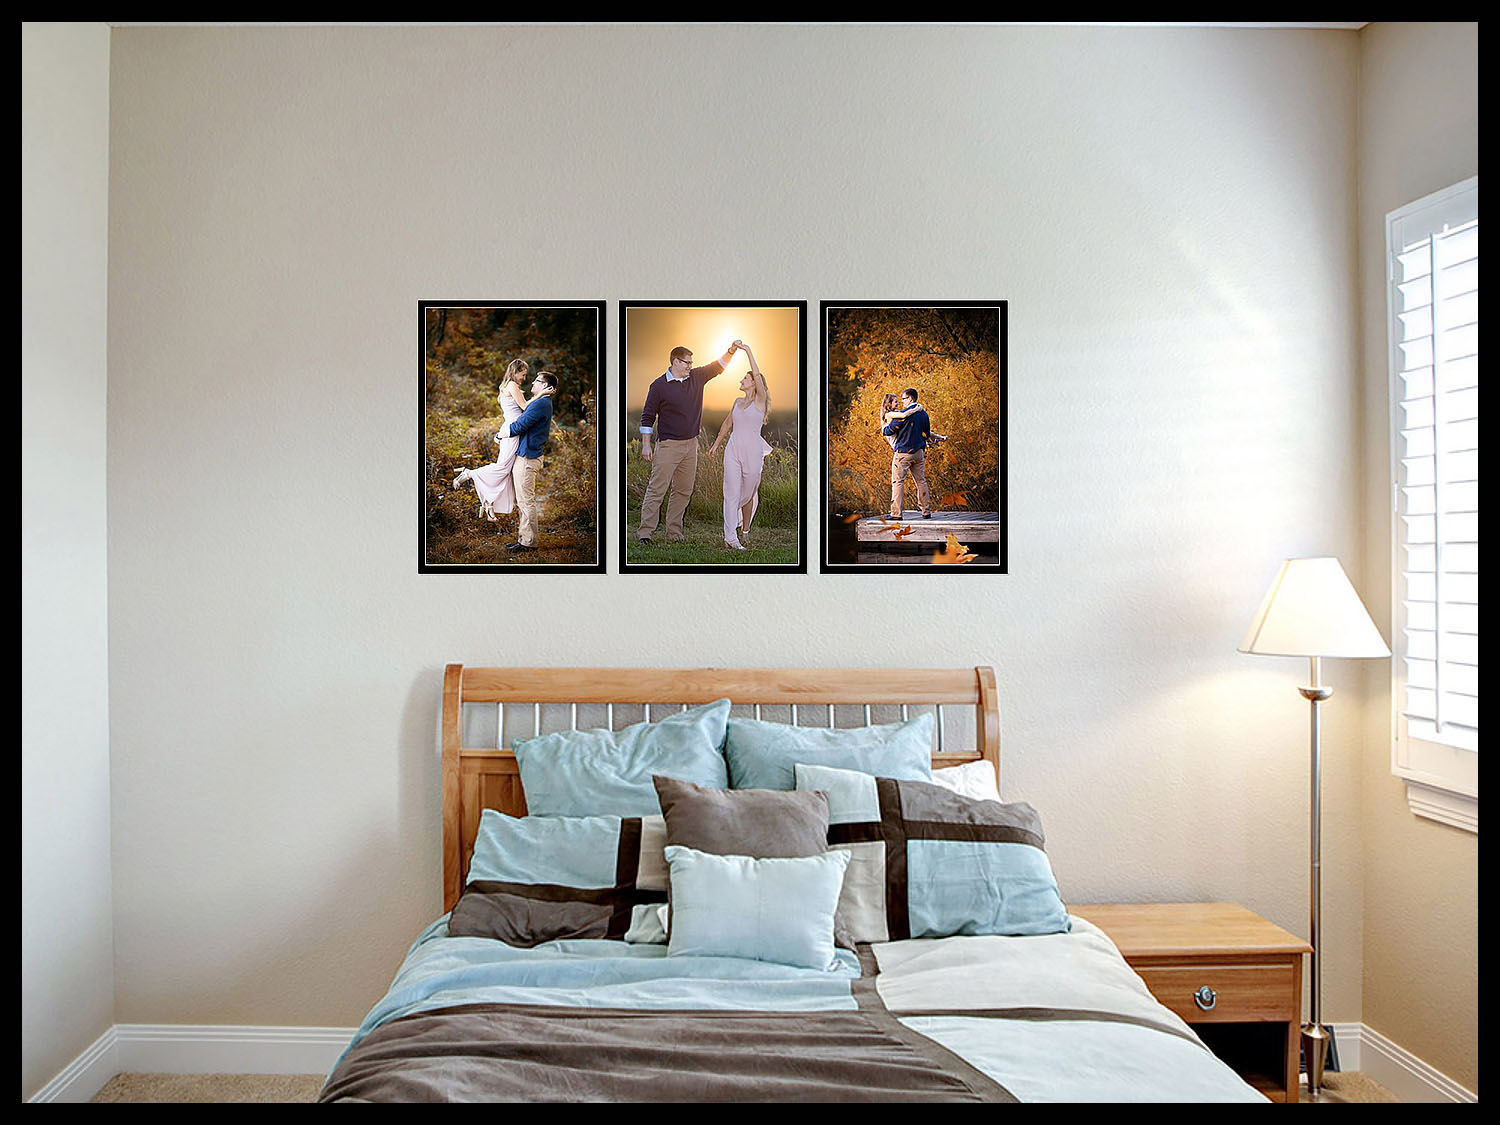 Engagement pictures on wall.